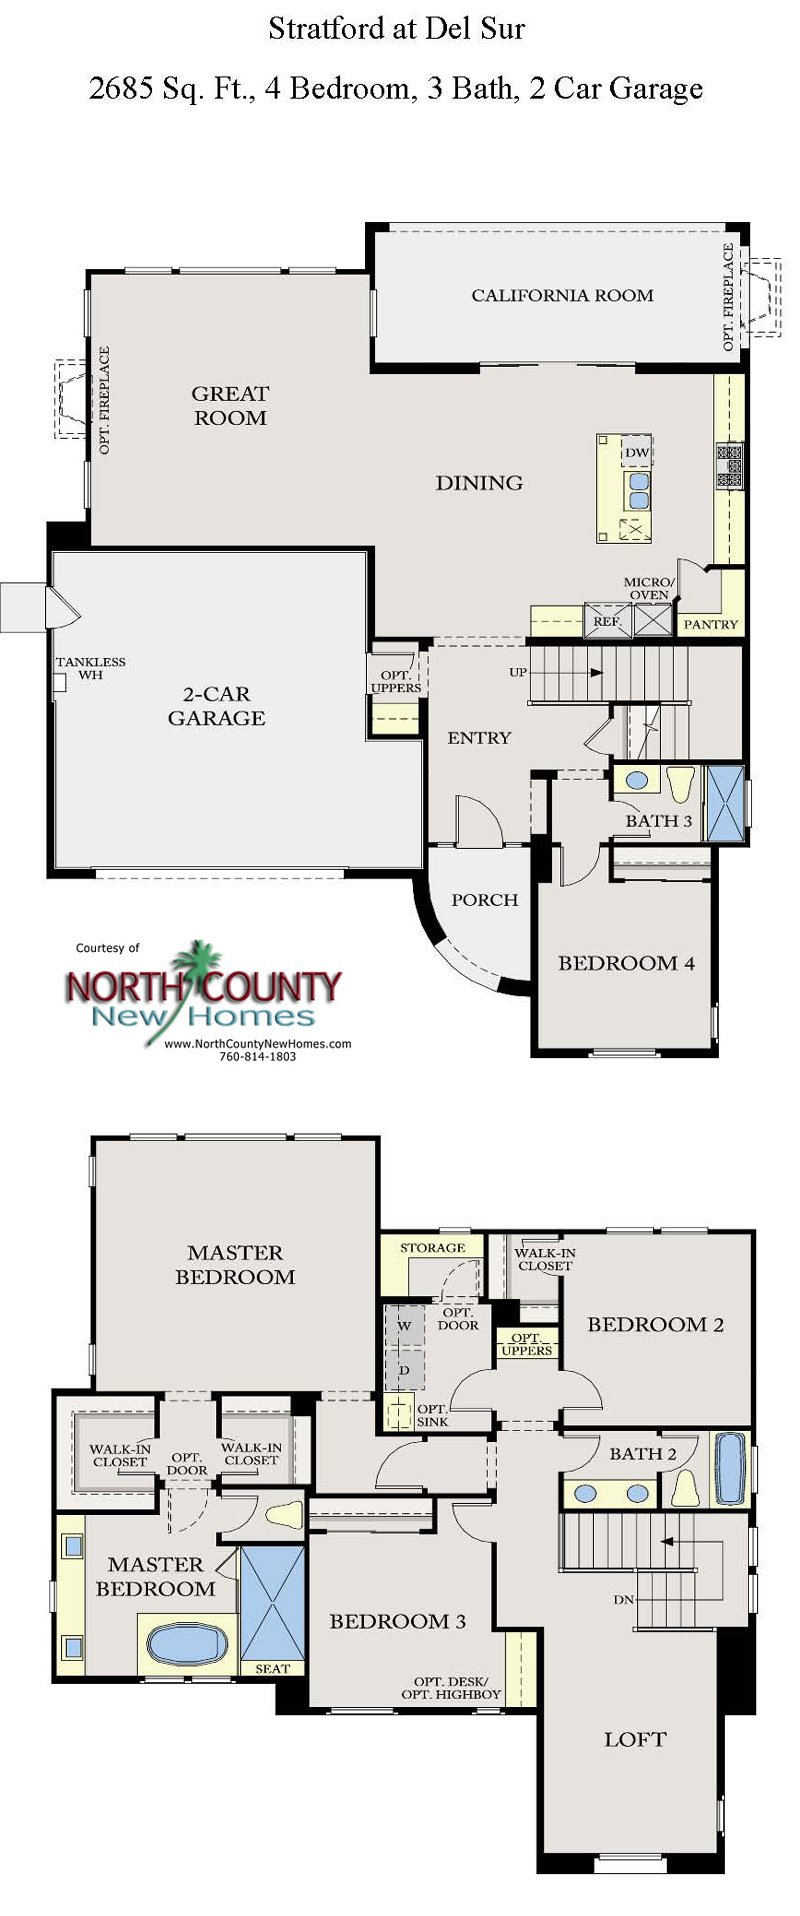 Stratford at Del Sur Floor Plans New Homes in San Diego North